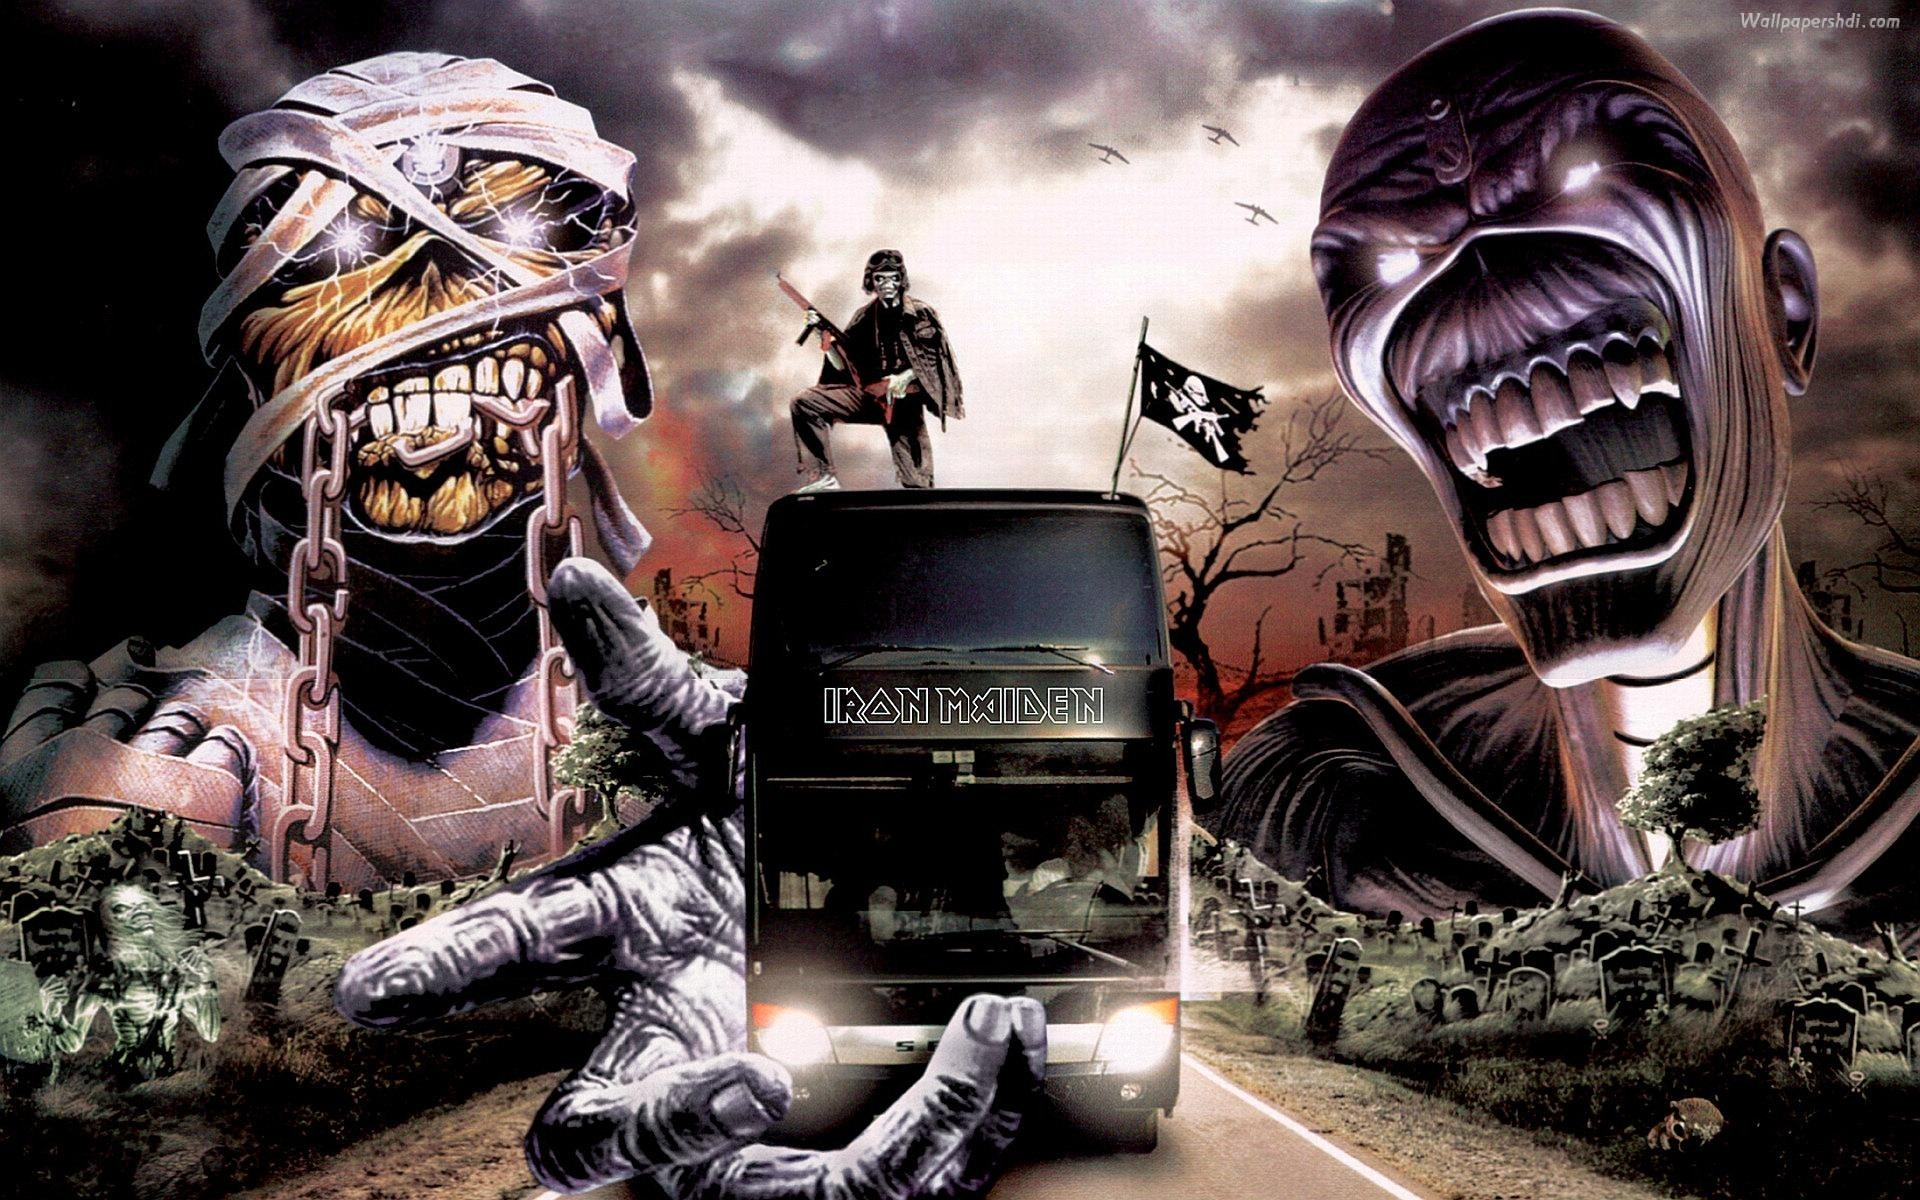 Download the Iron Maiden Tour Bus Wallpaper, Iron Maiden Tour Bus .